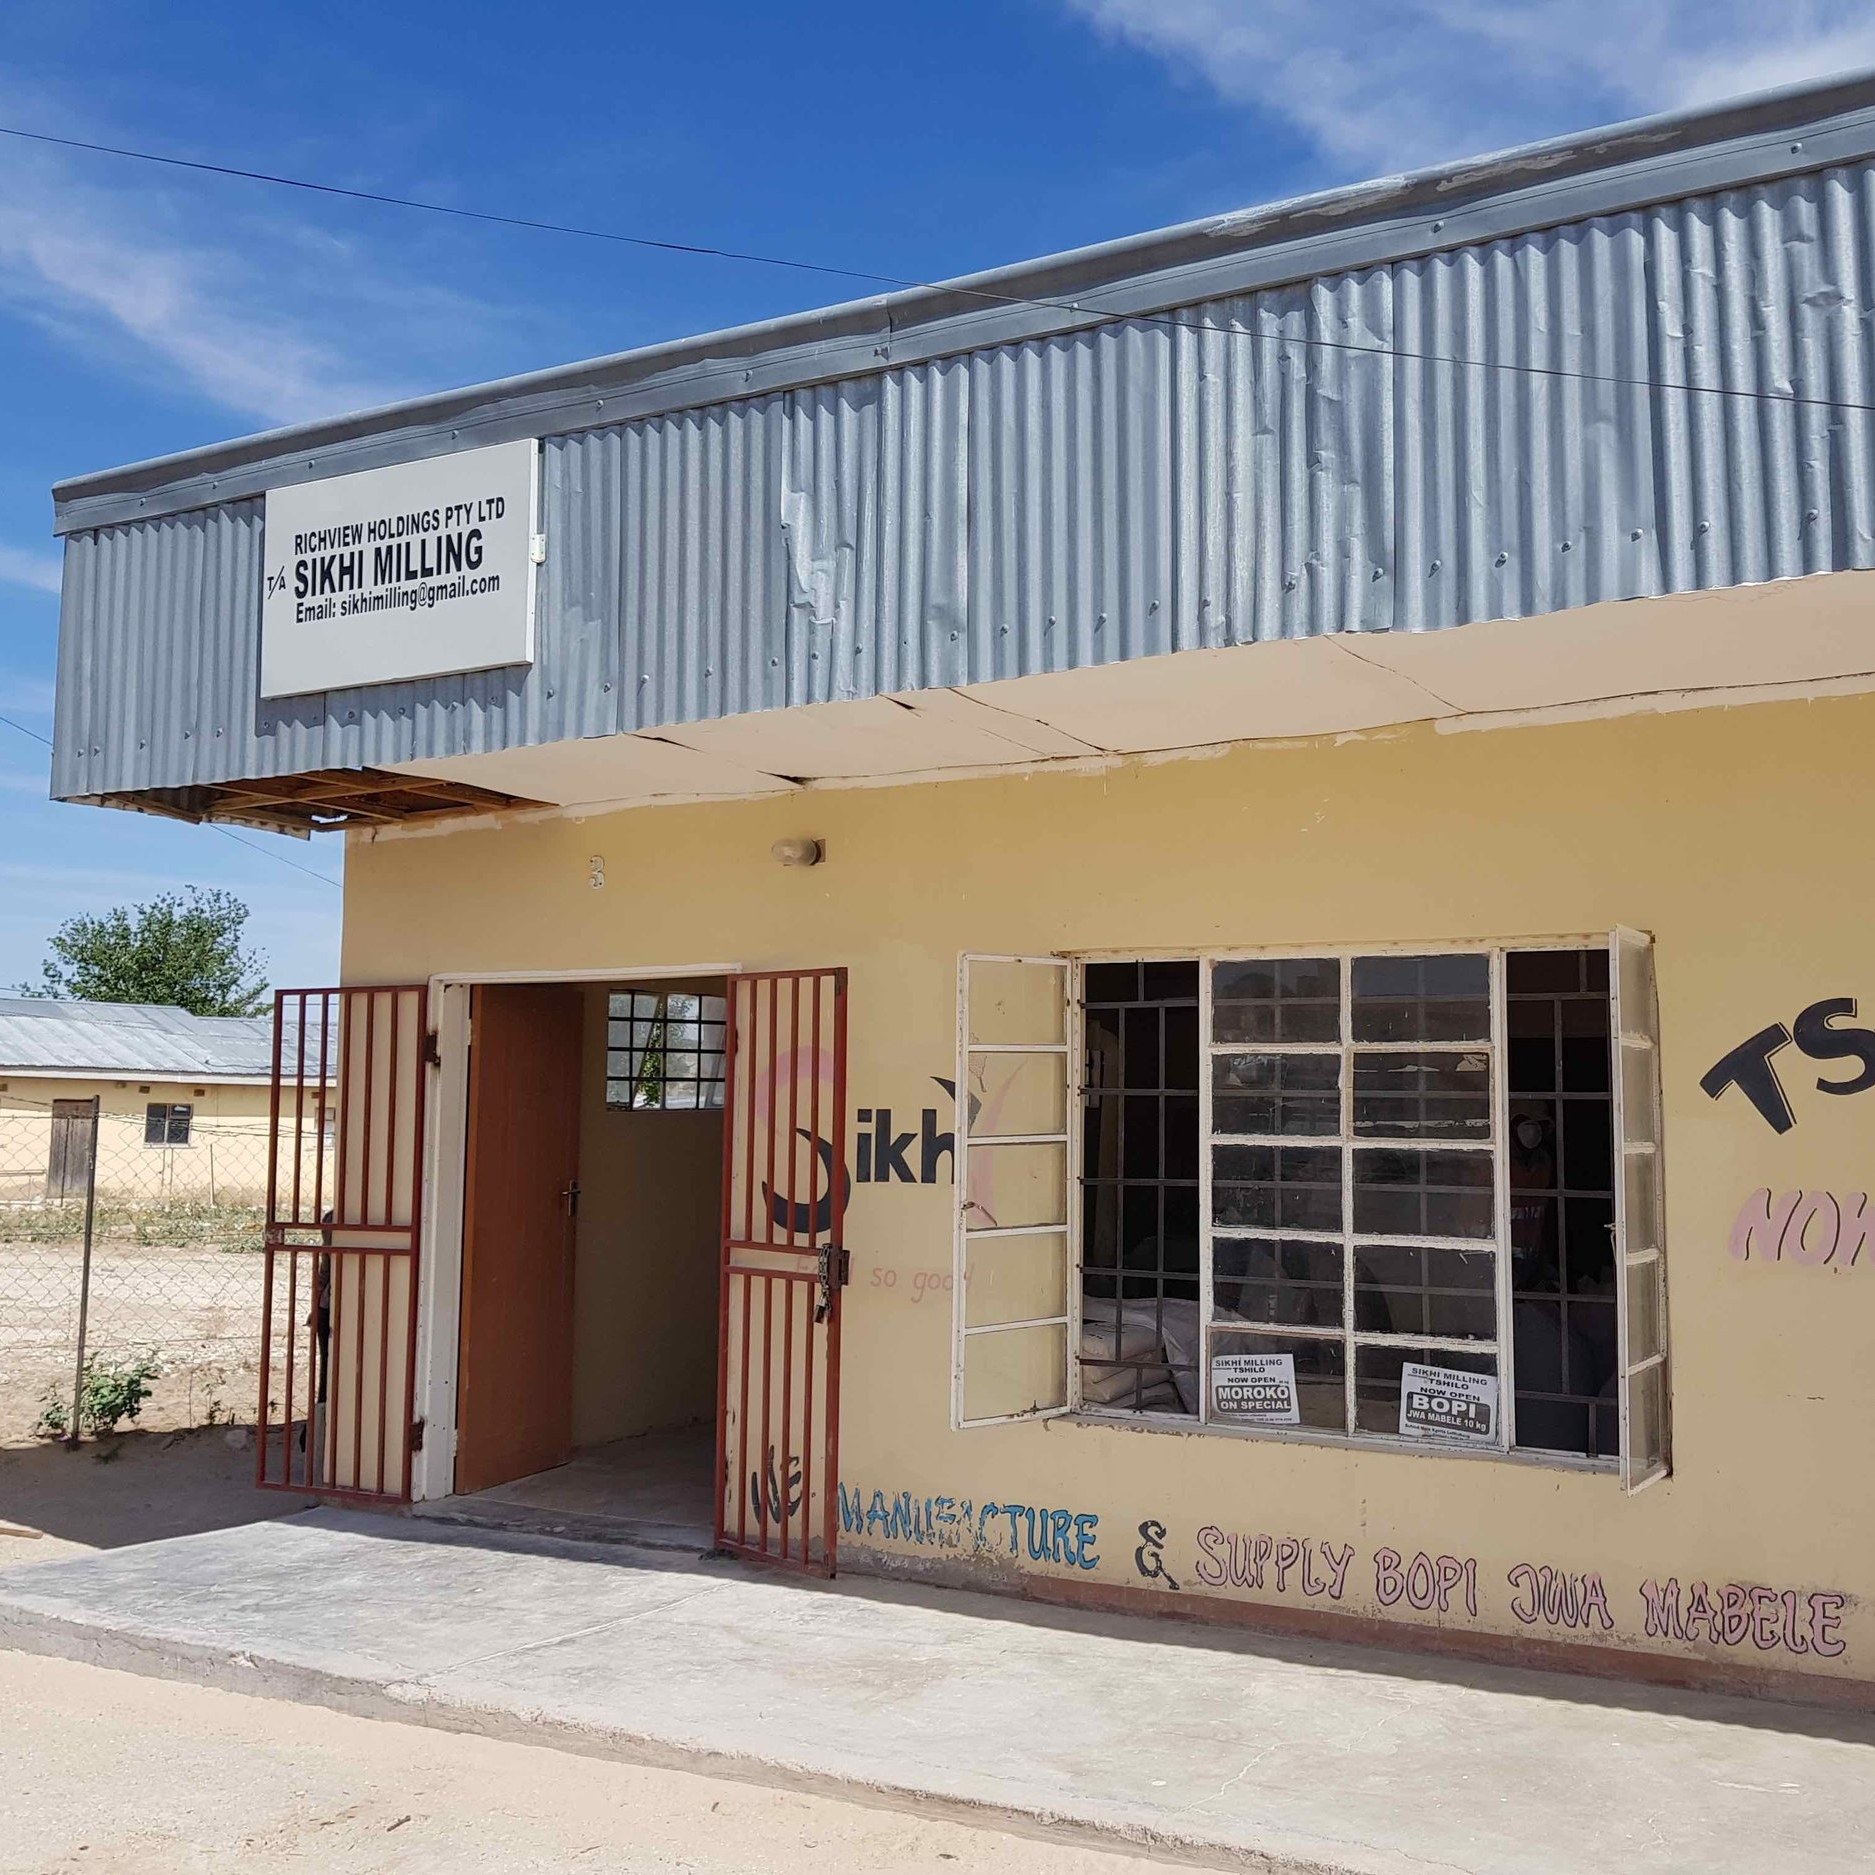 Sikhi Milling - Service Description∙ Sorghum and Maize Mealing By-productsOpening Hours:Monday - Friday: 08:0017:00Saturday: 18:30-15:30Sunday: -Directions:Richview ComplexModimo WardContact: Neo Khakhunzi📞 (+267) 72 58 23 68✎